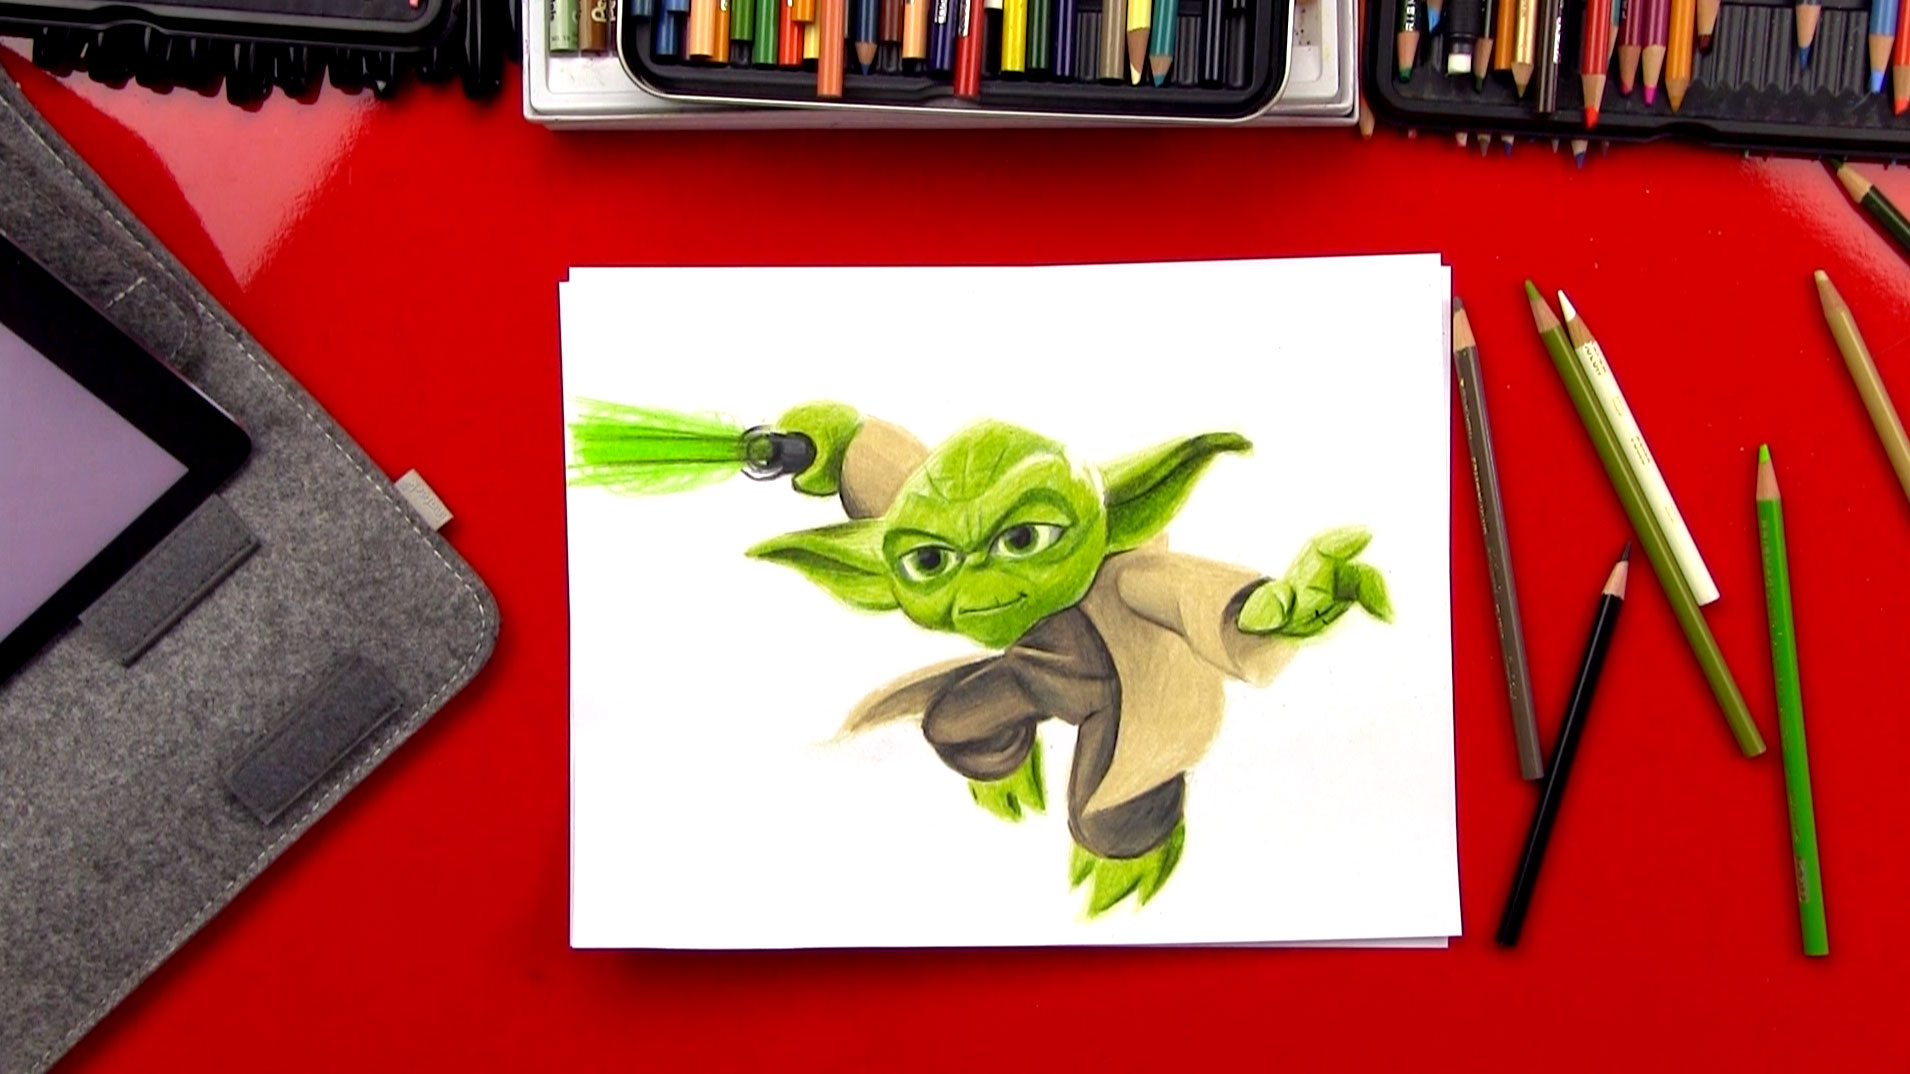 Epic Angry Birds Timelapse Drawings Cool Music: Advance Sketching